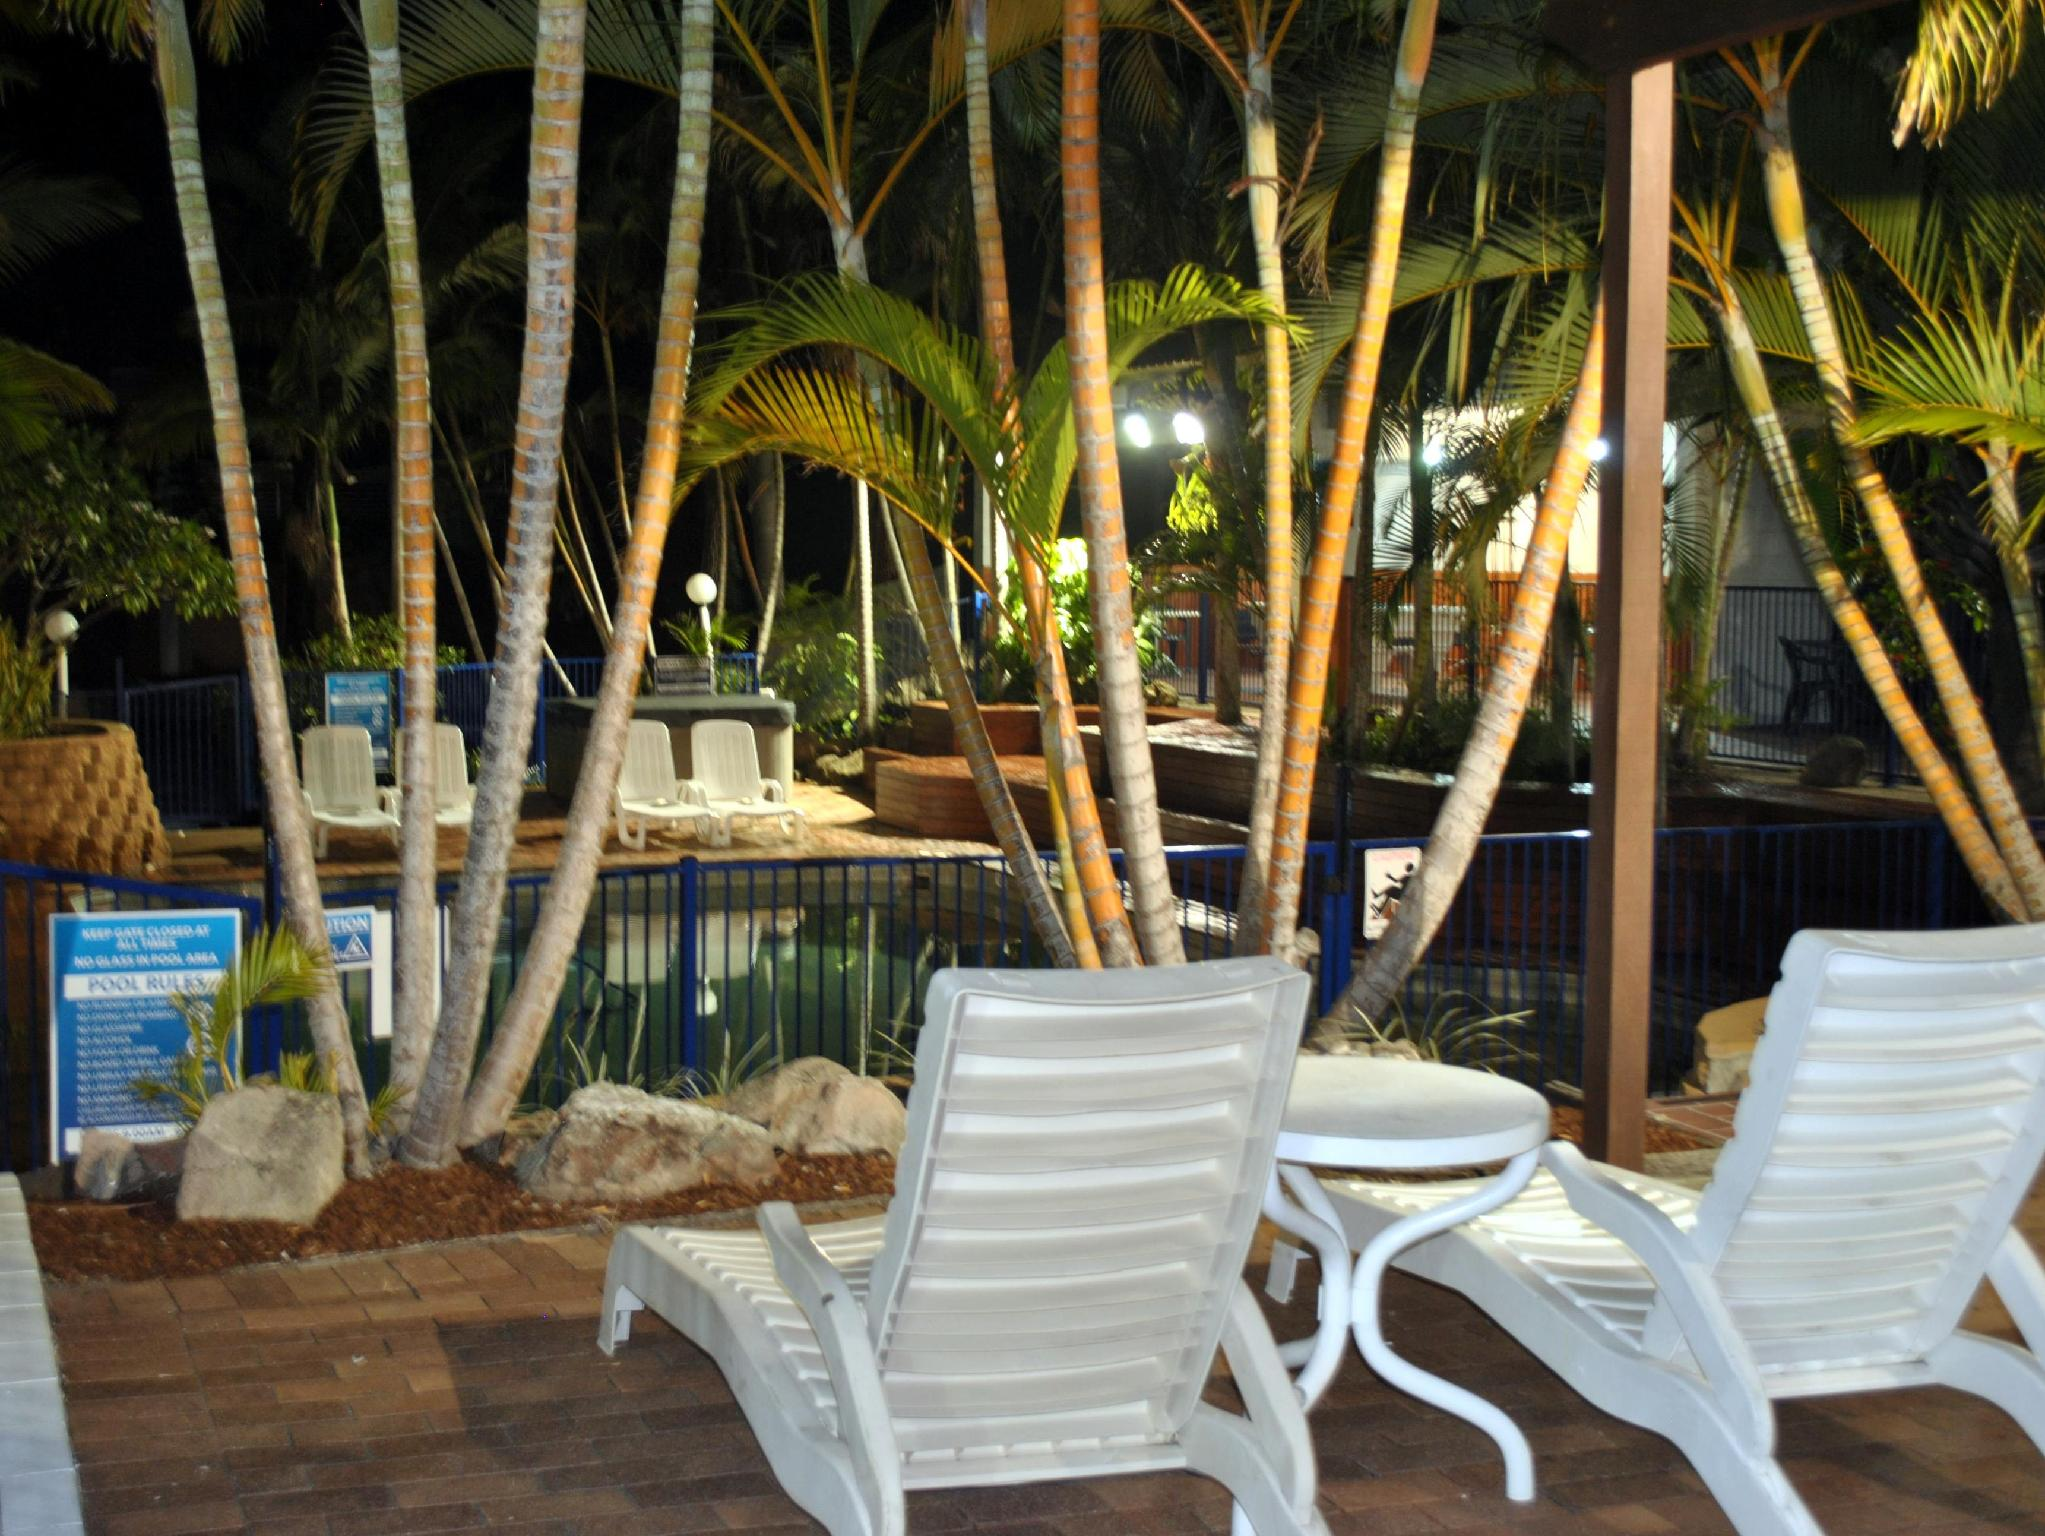 About Club Surfers Hotel